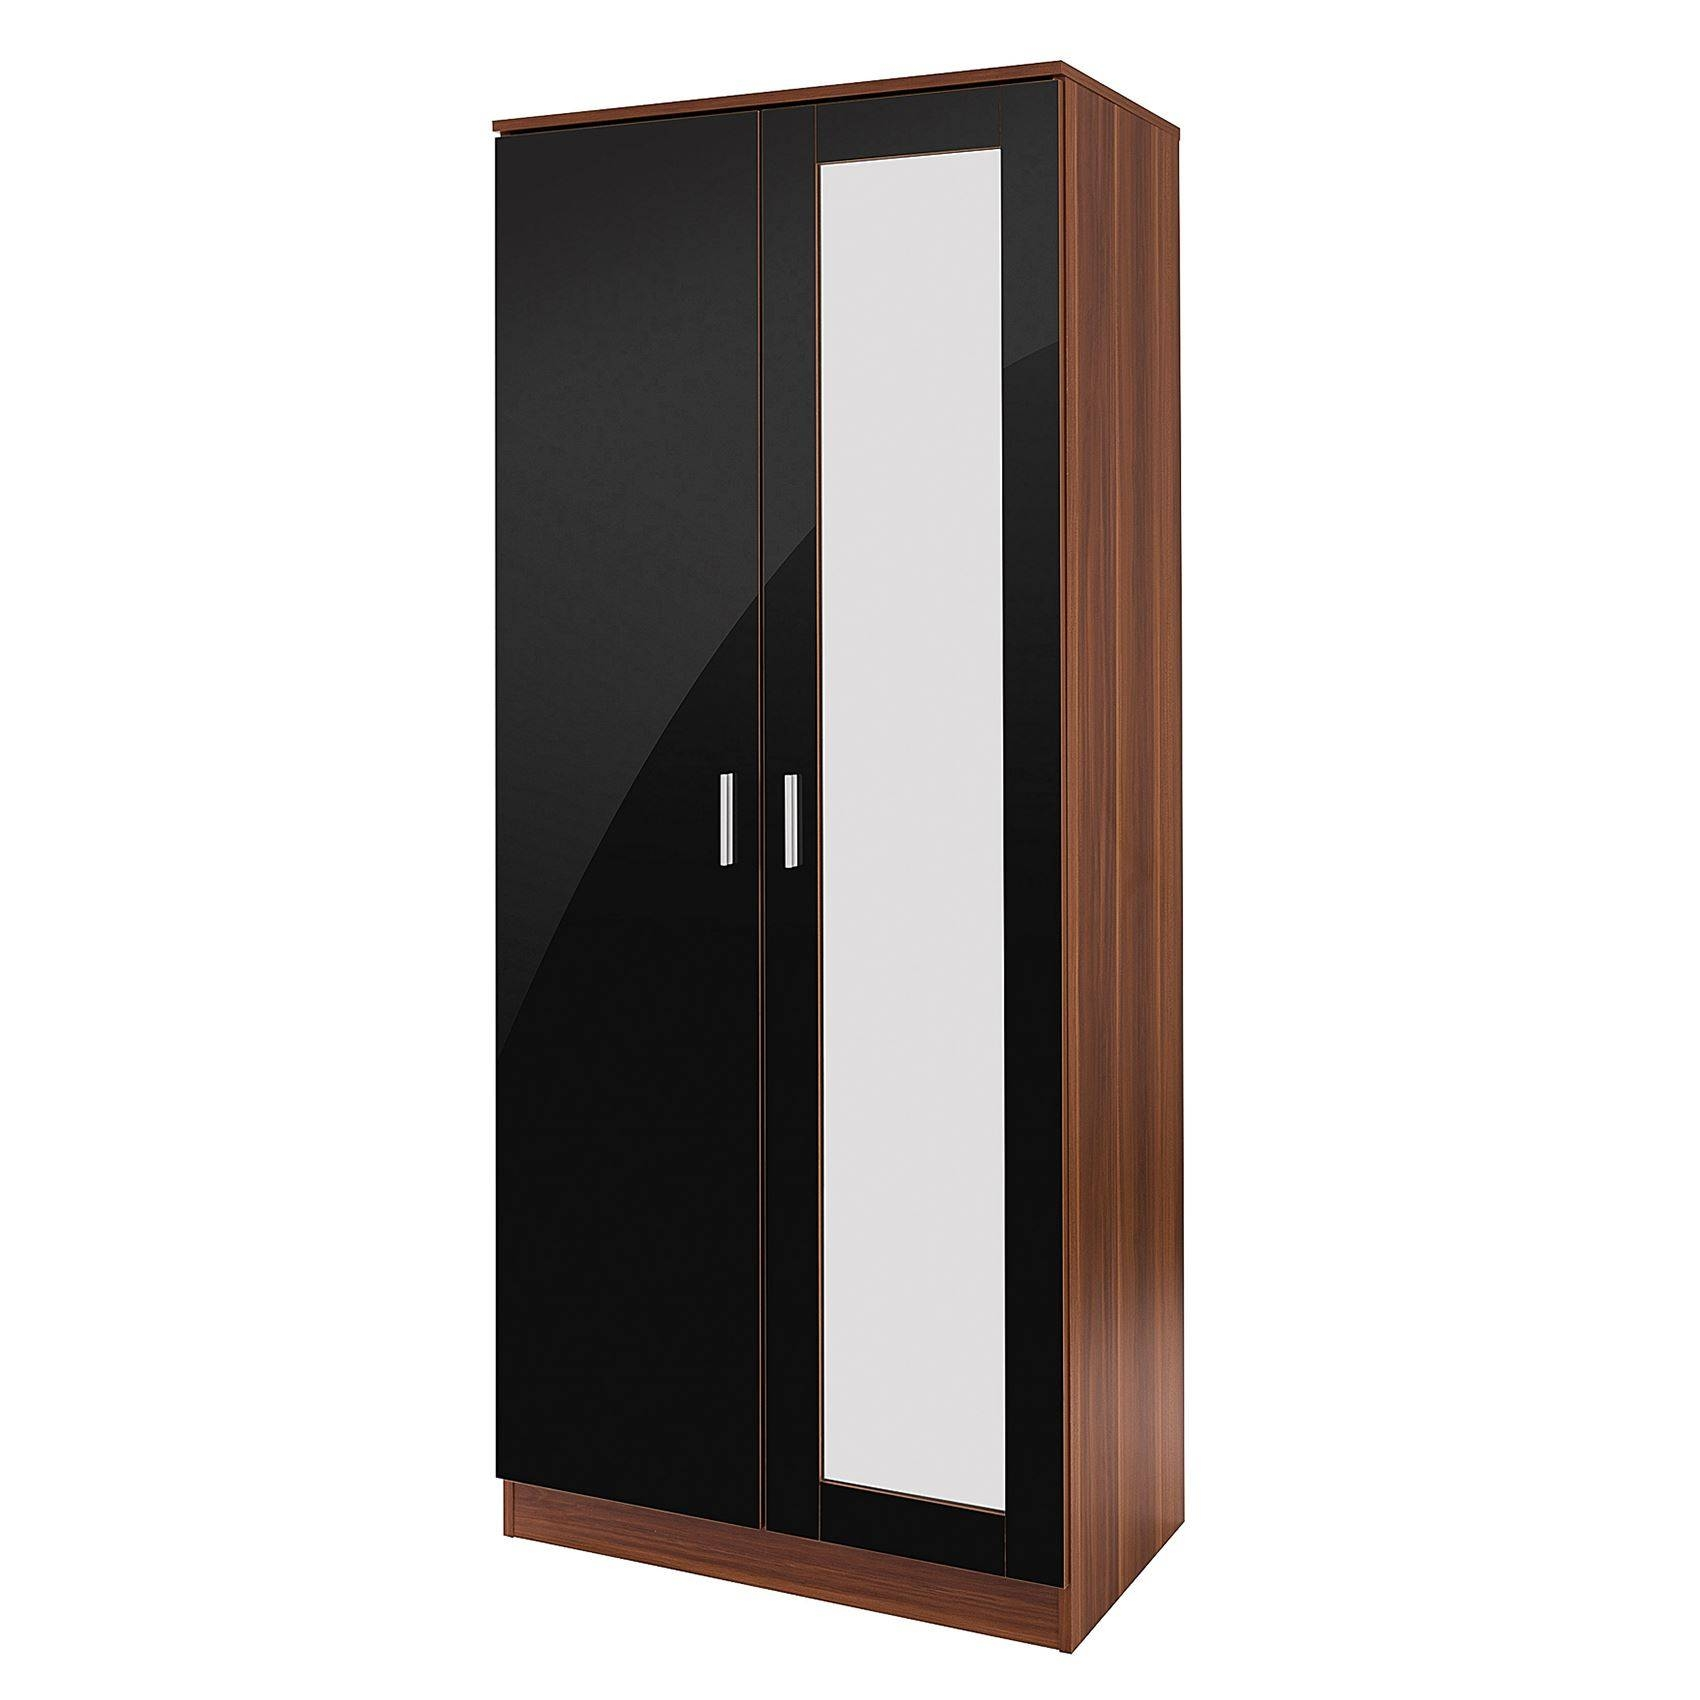 Bedroom Furniture 3 Piece Set Black Gloss & Walnut Wardrobe throughout 3 Door Black Gloss Wardrobes (Image 1 of 15)